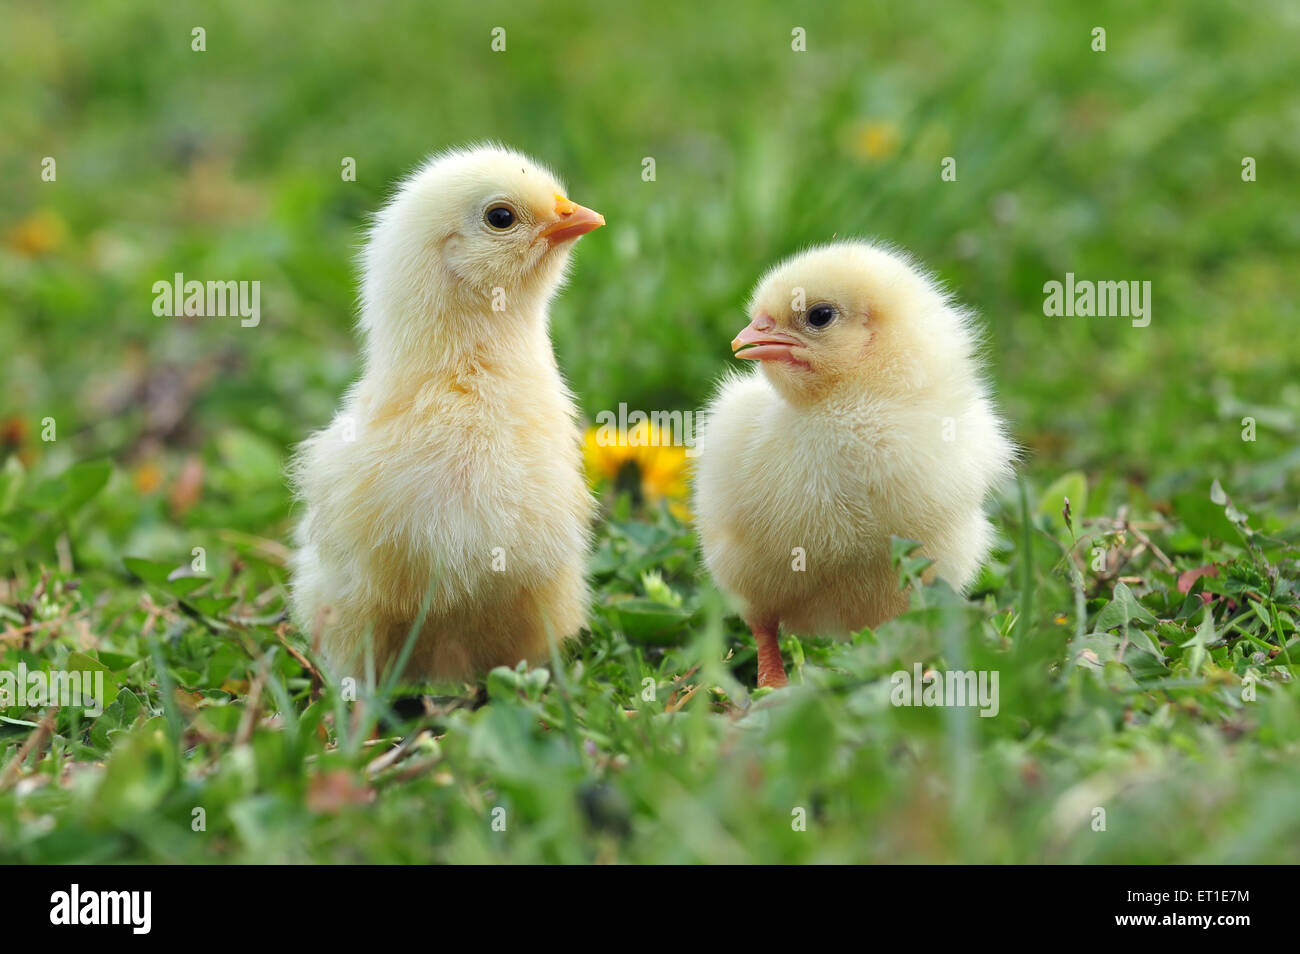 Two young chickens in a grass - Stock Image